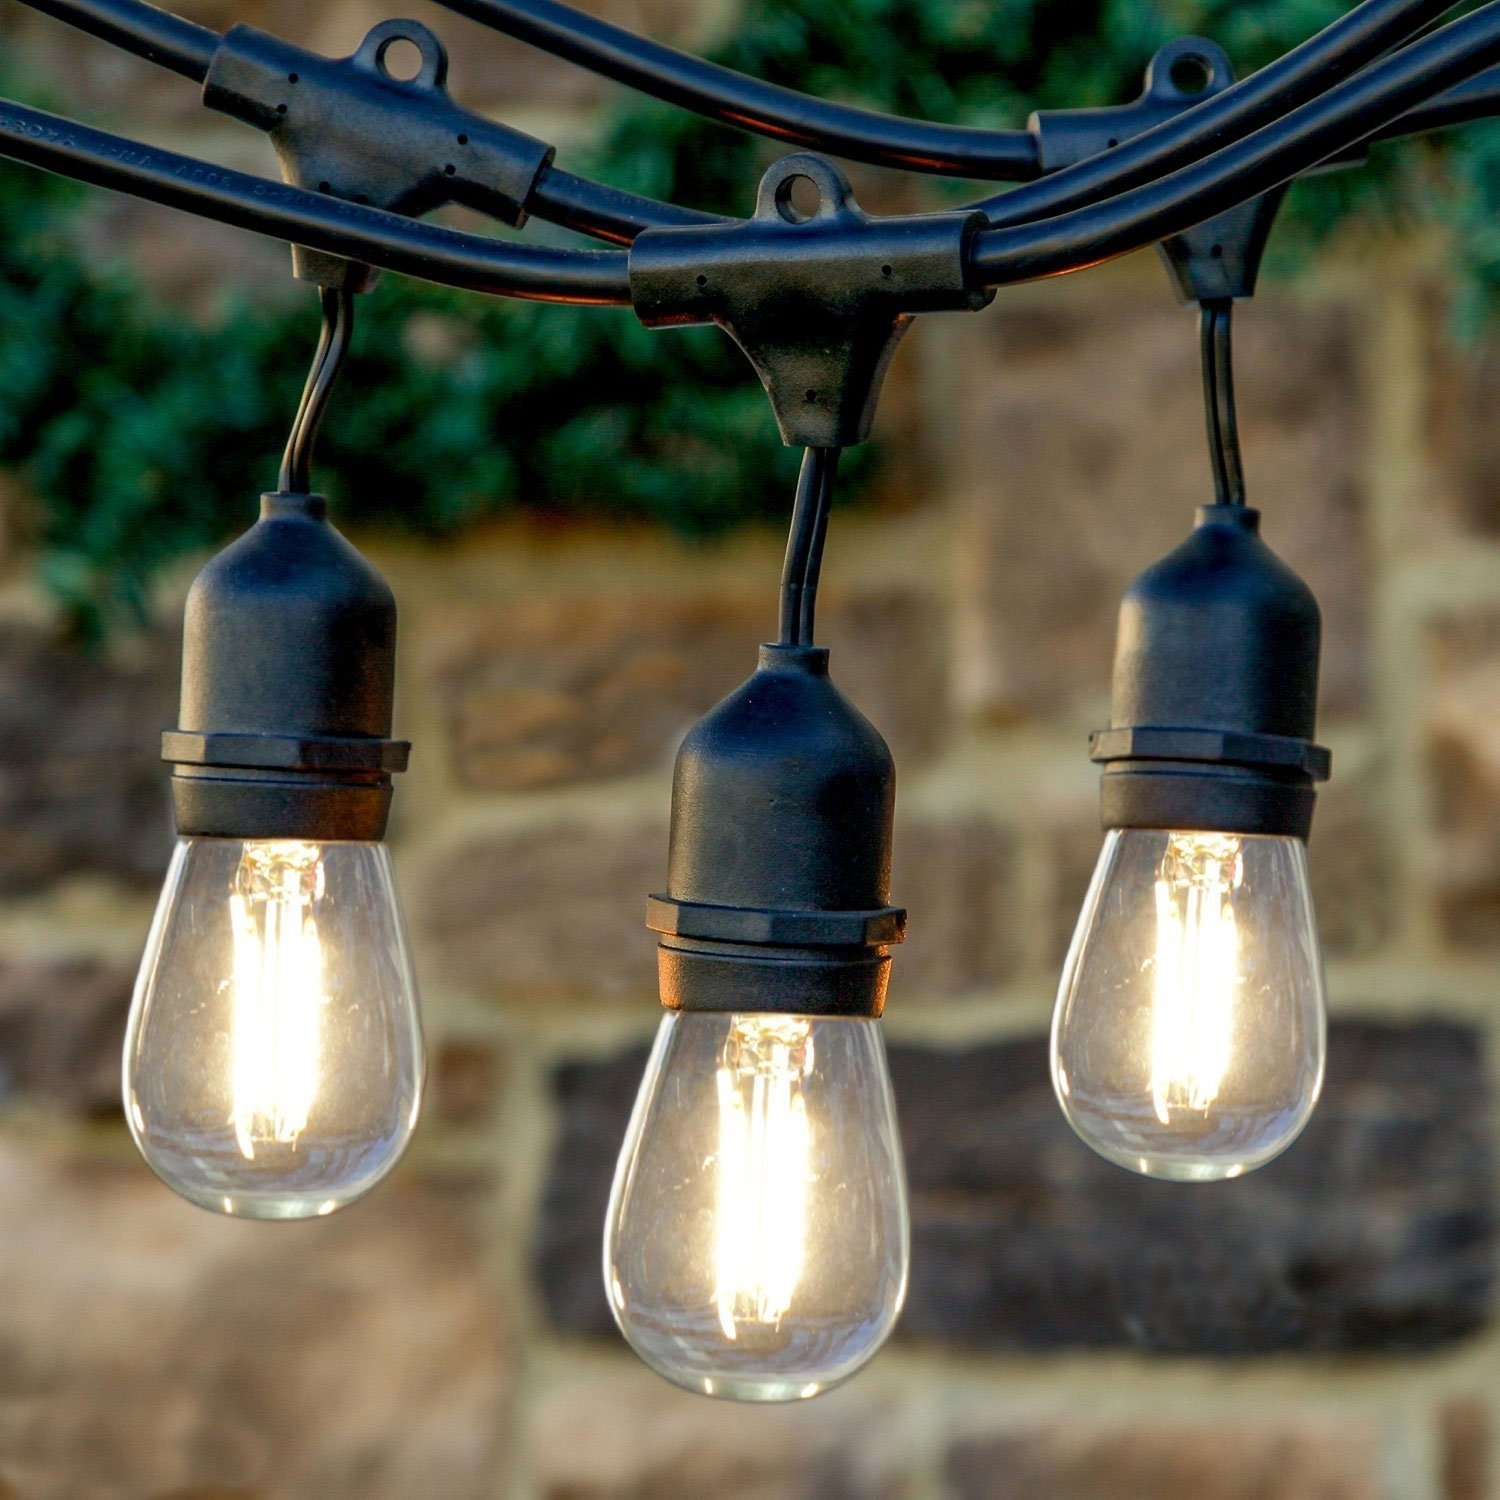 Brightech | Wayfair With Regard To Contemporary Outdoor String Lights At Wayfair (#3 of 15)